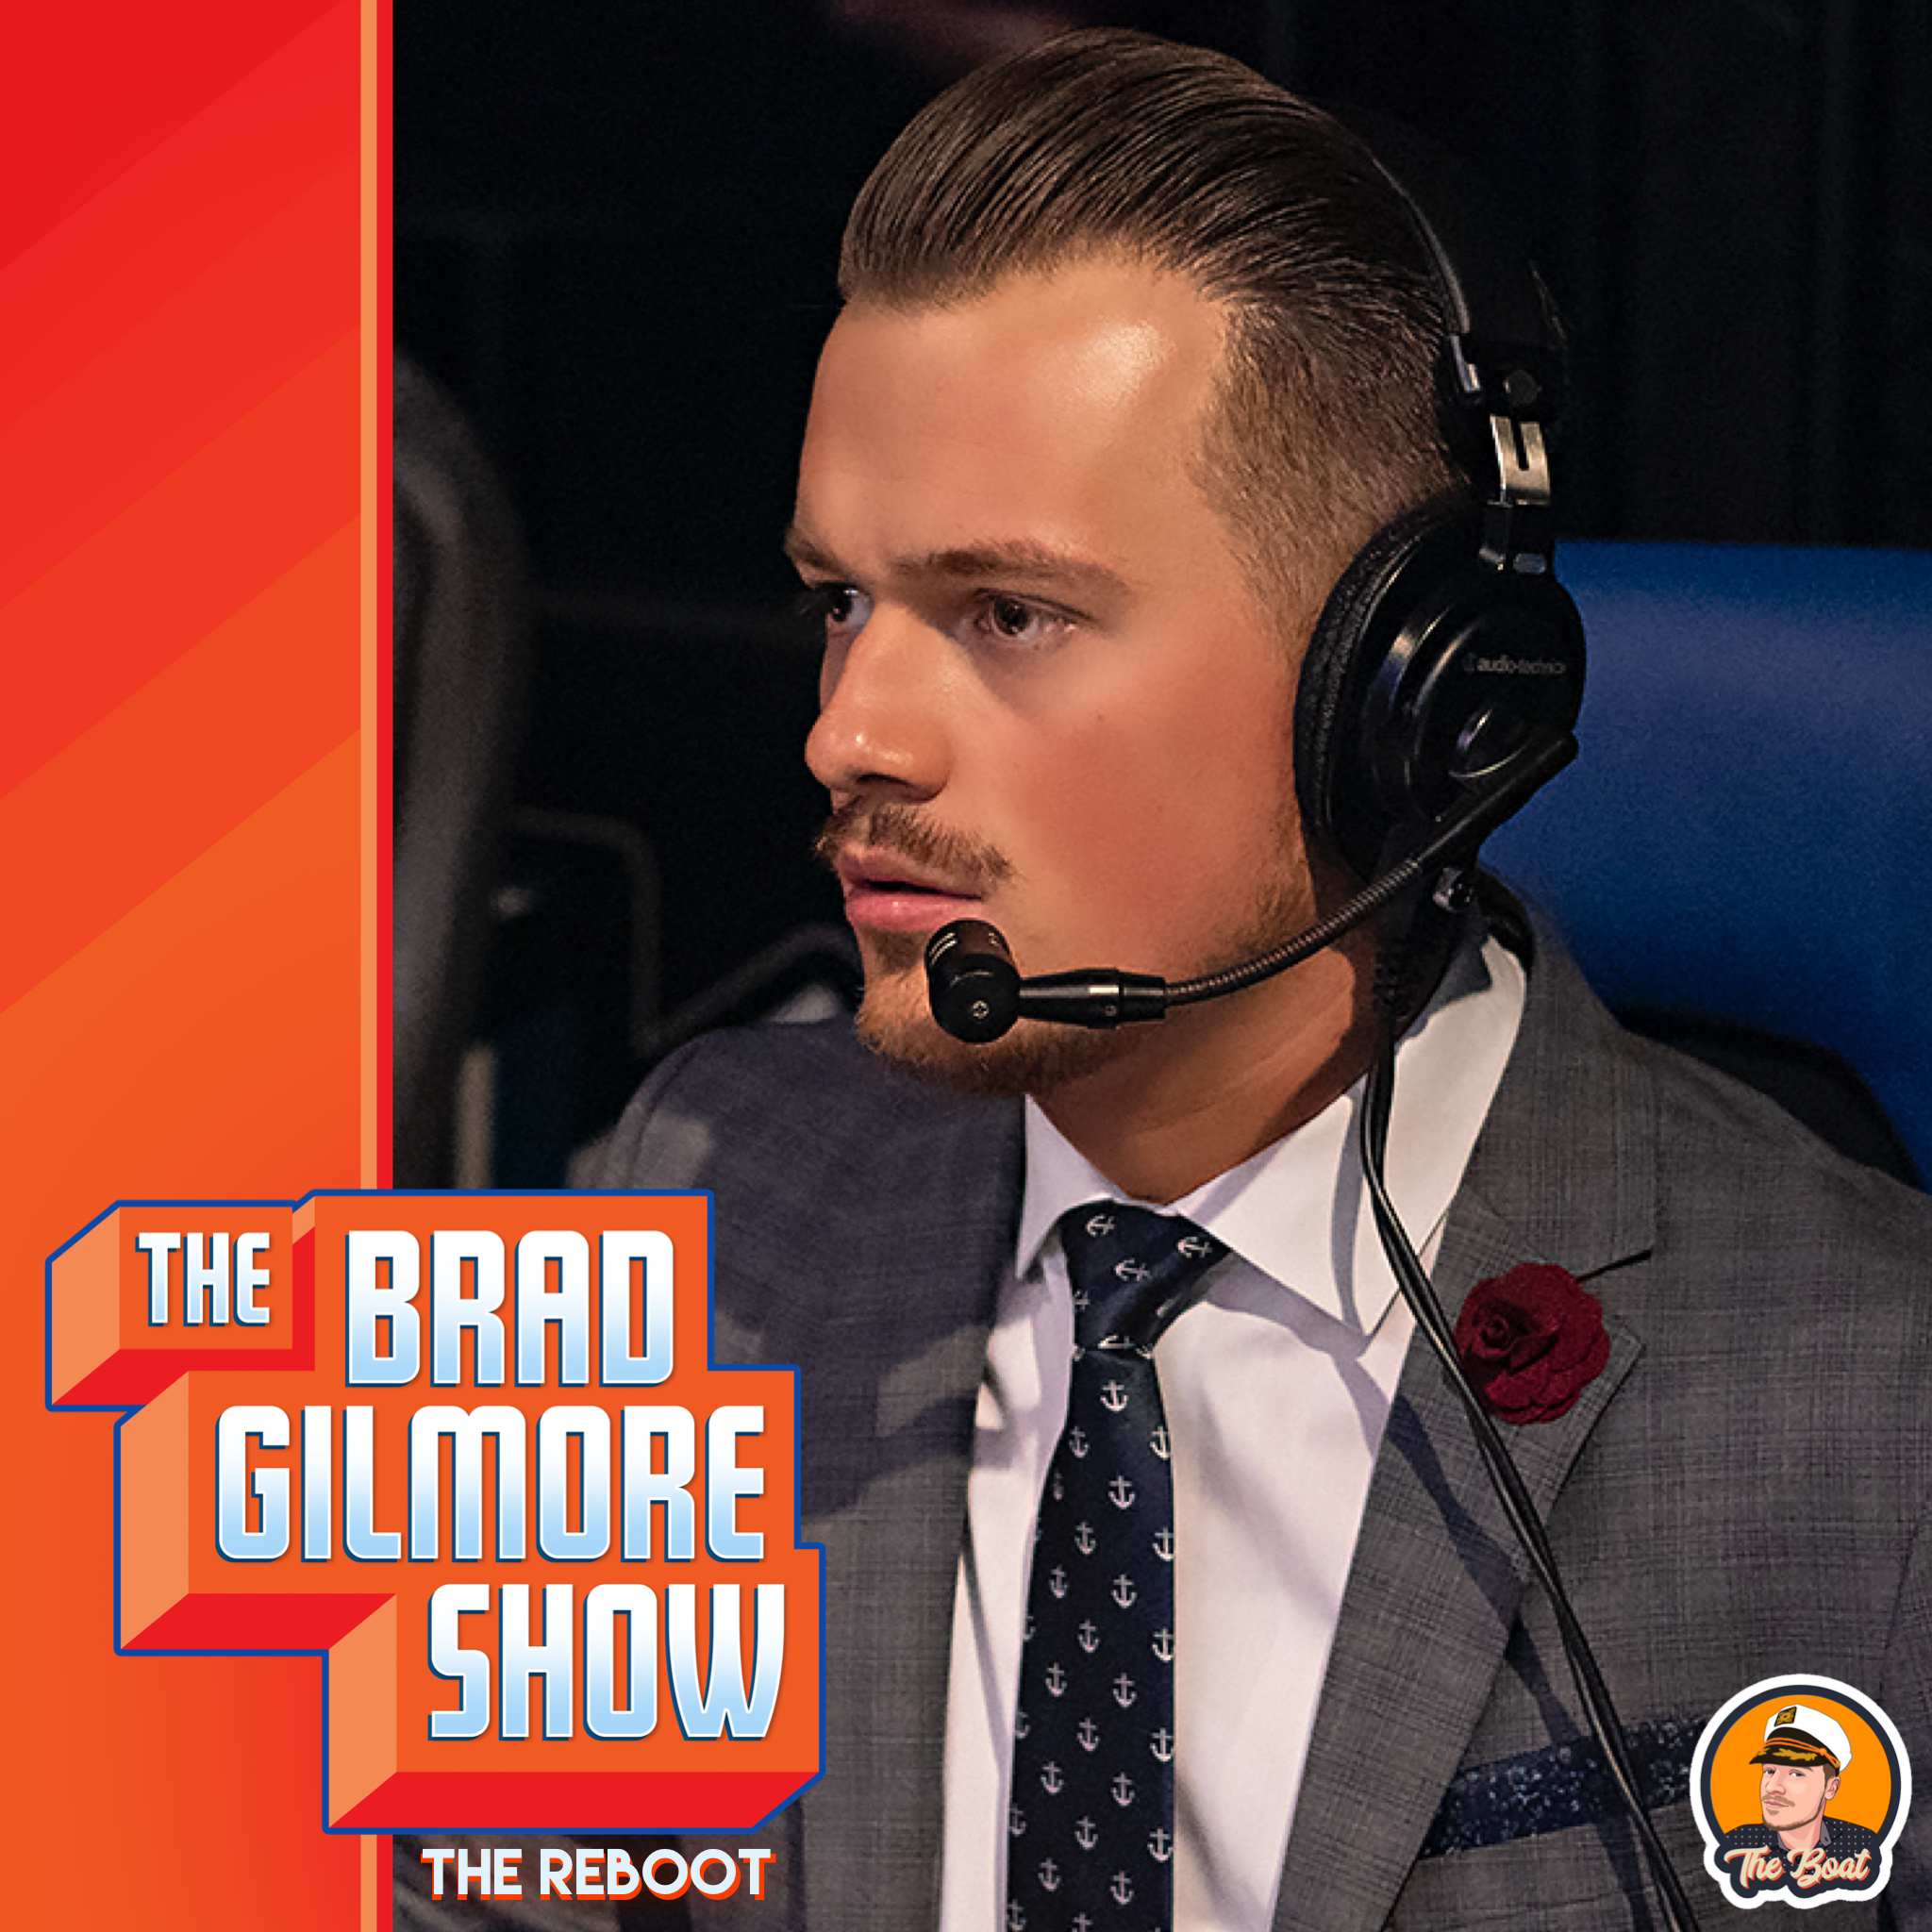 The Brad Gilmore Show: The Reboot